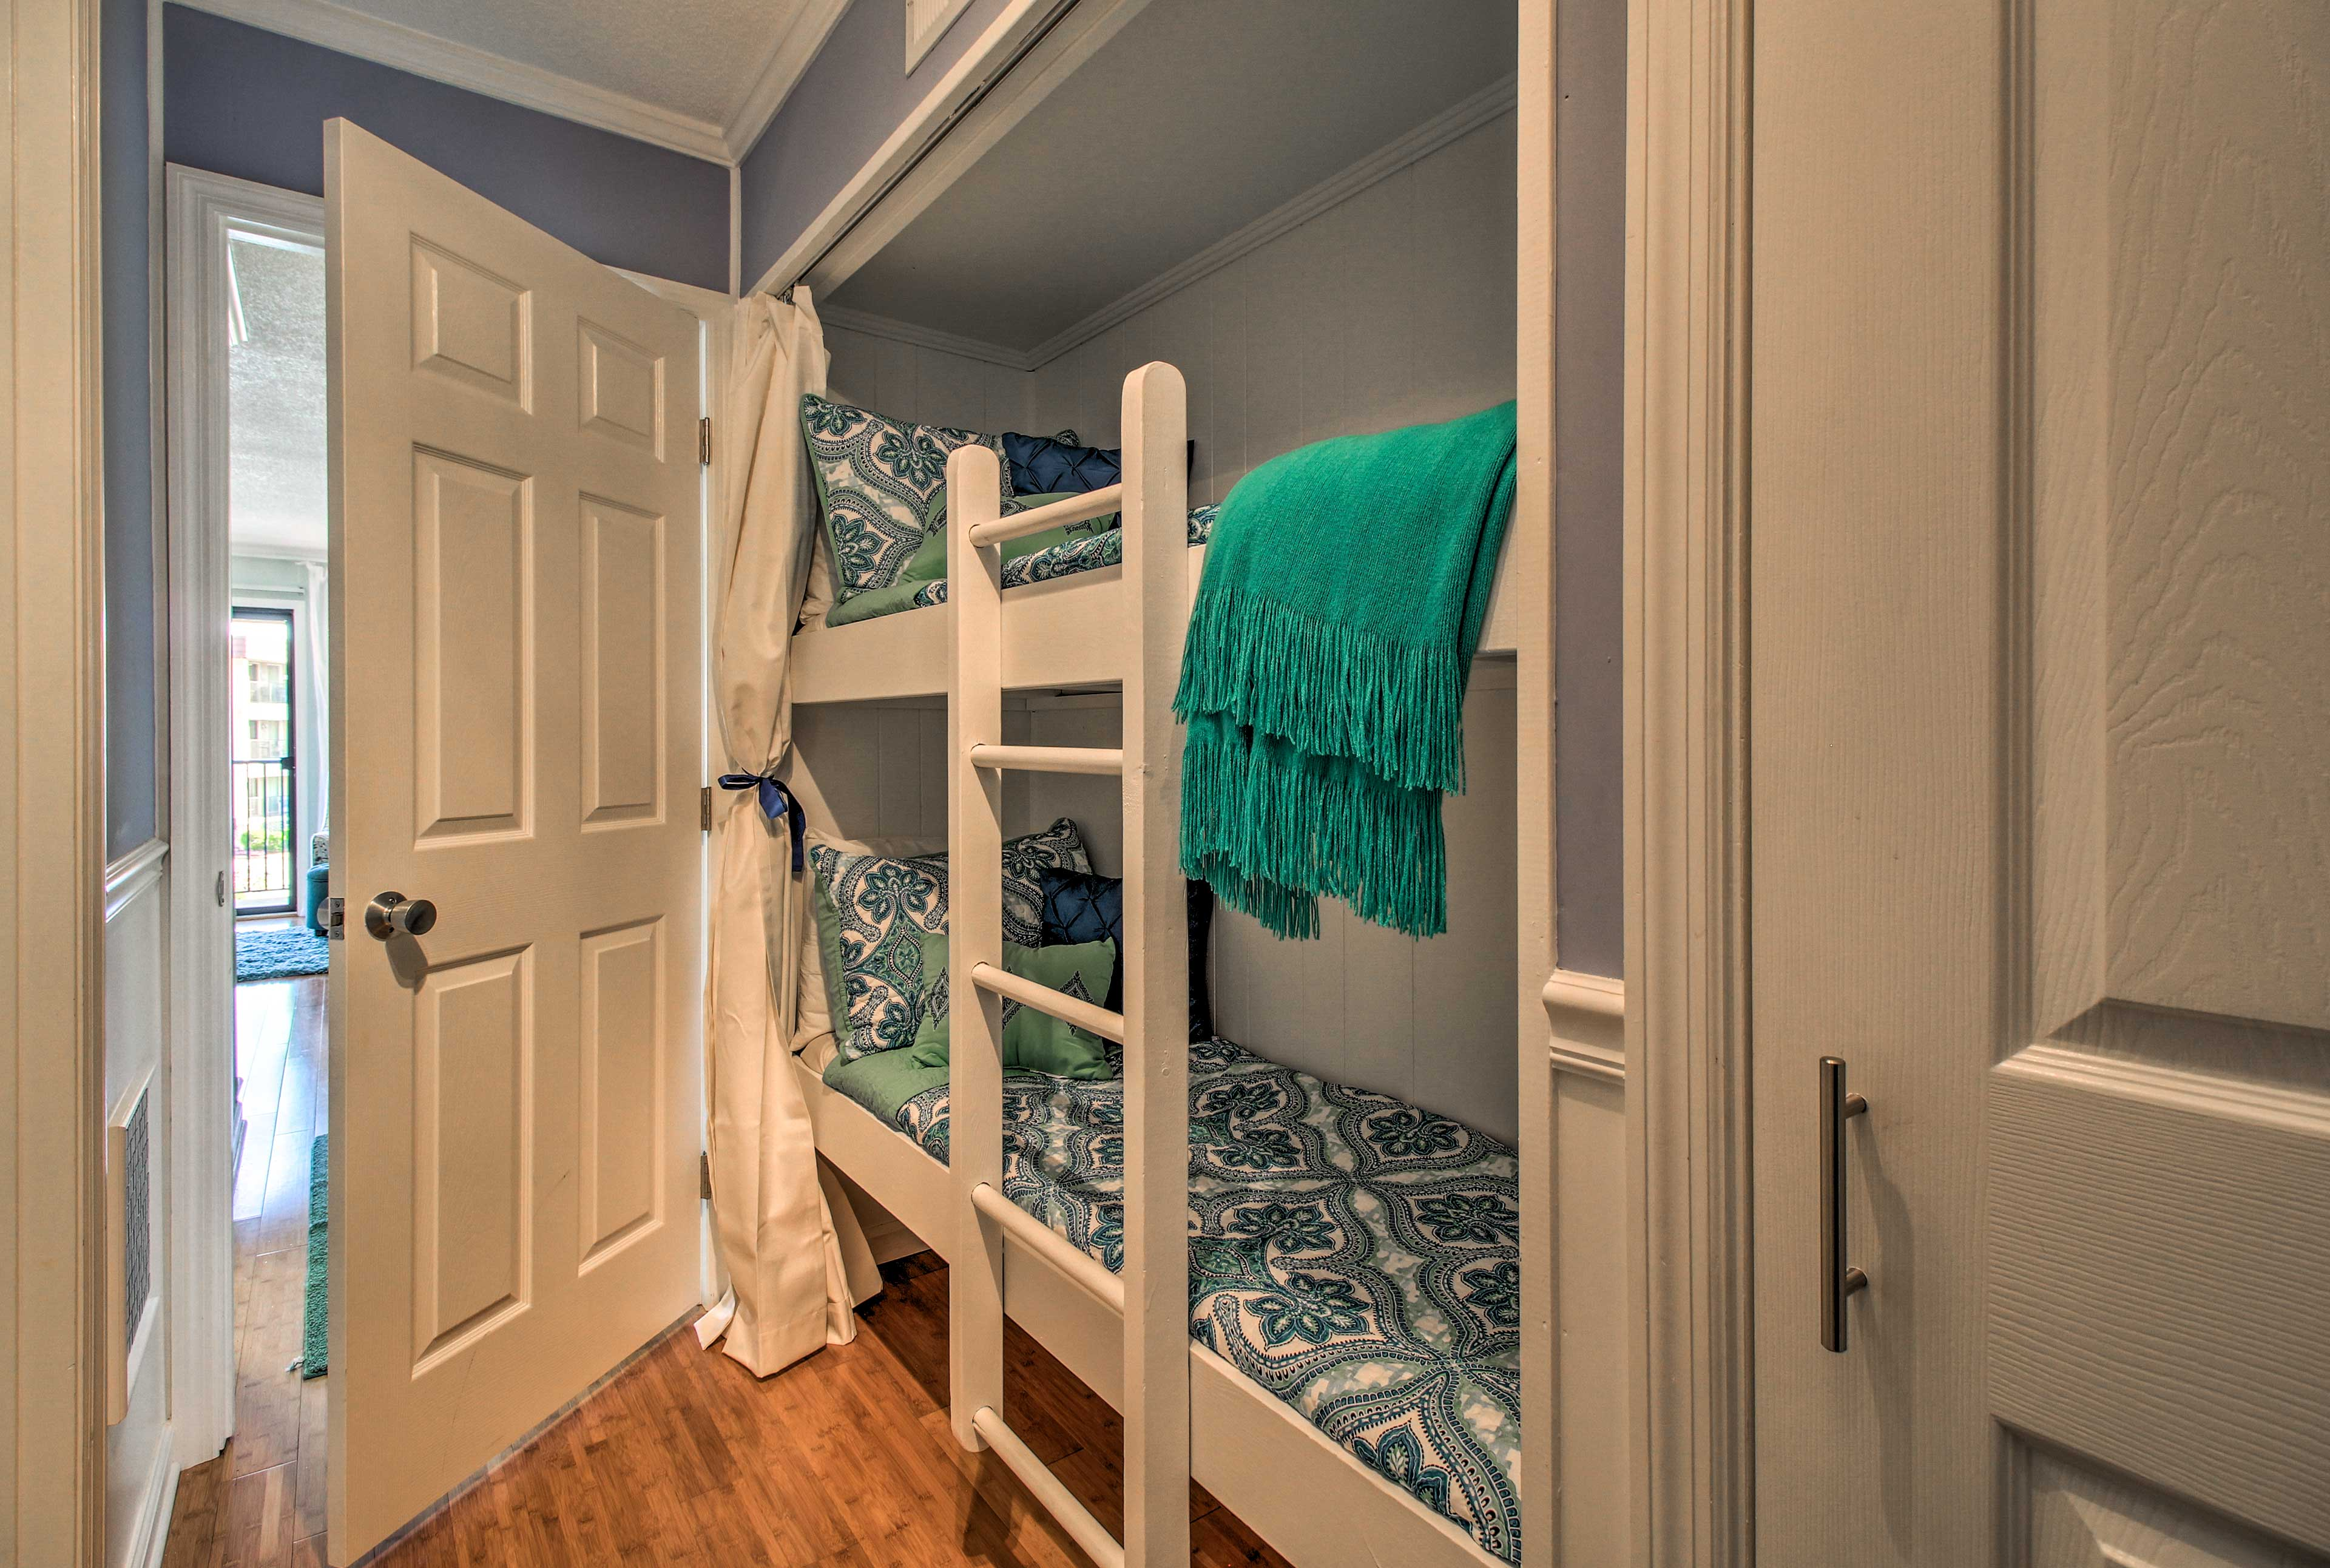 2 children will comfortably sleep in the twin-over-twin bunk bed.